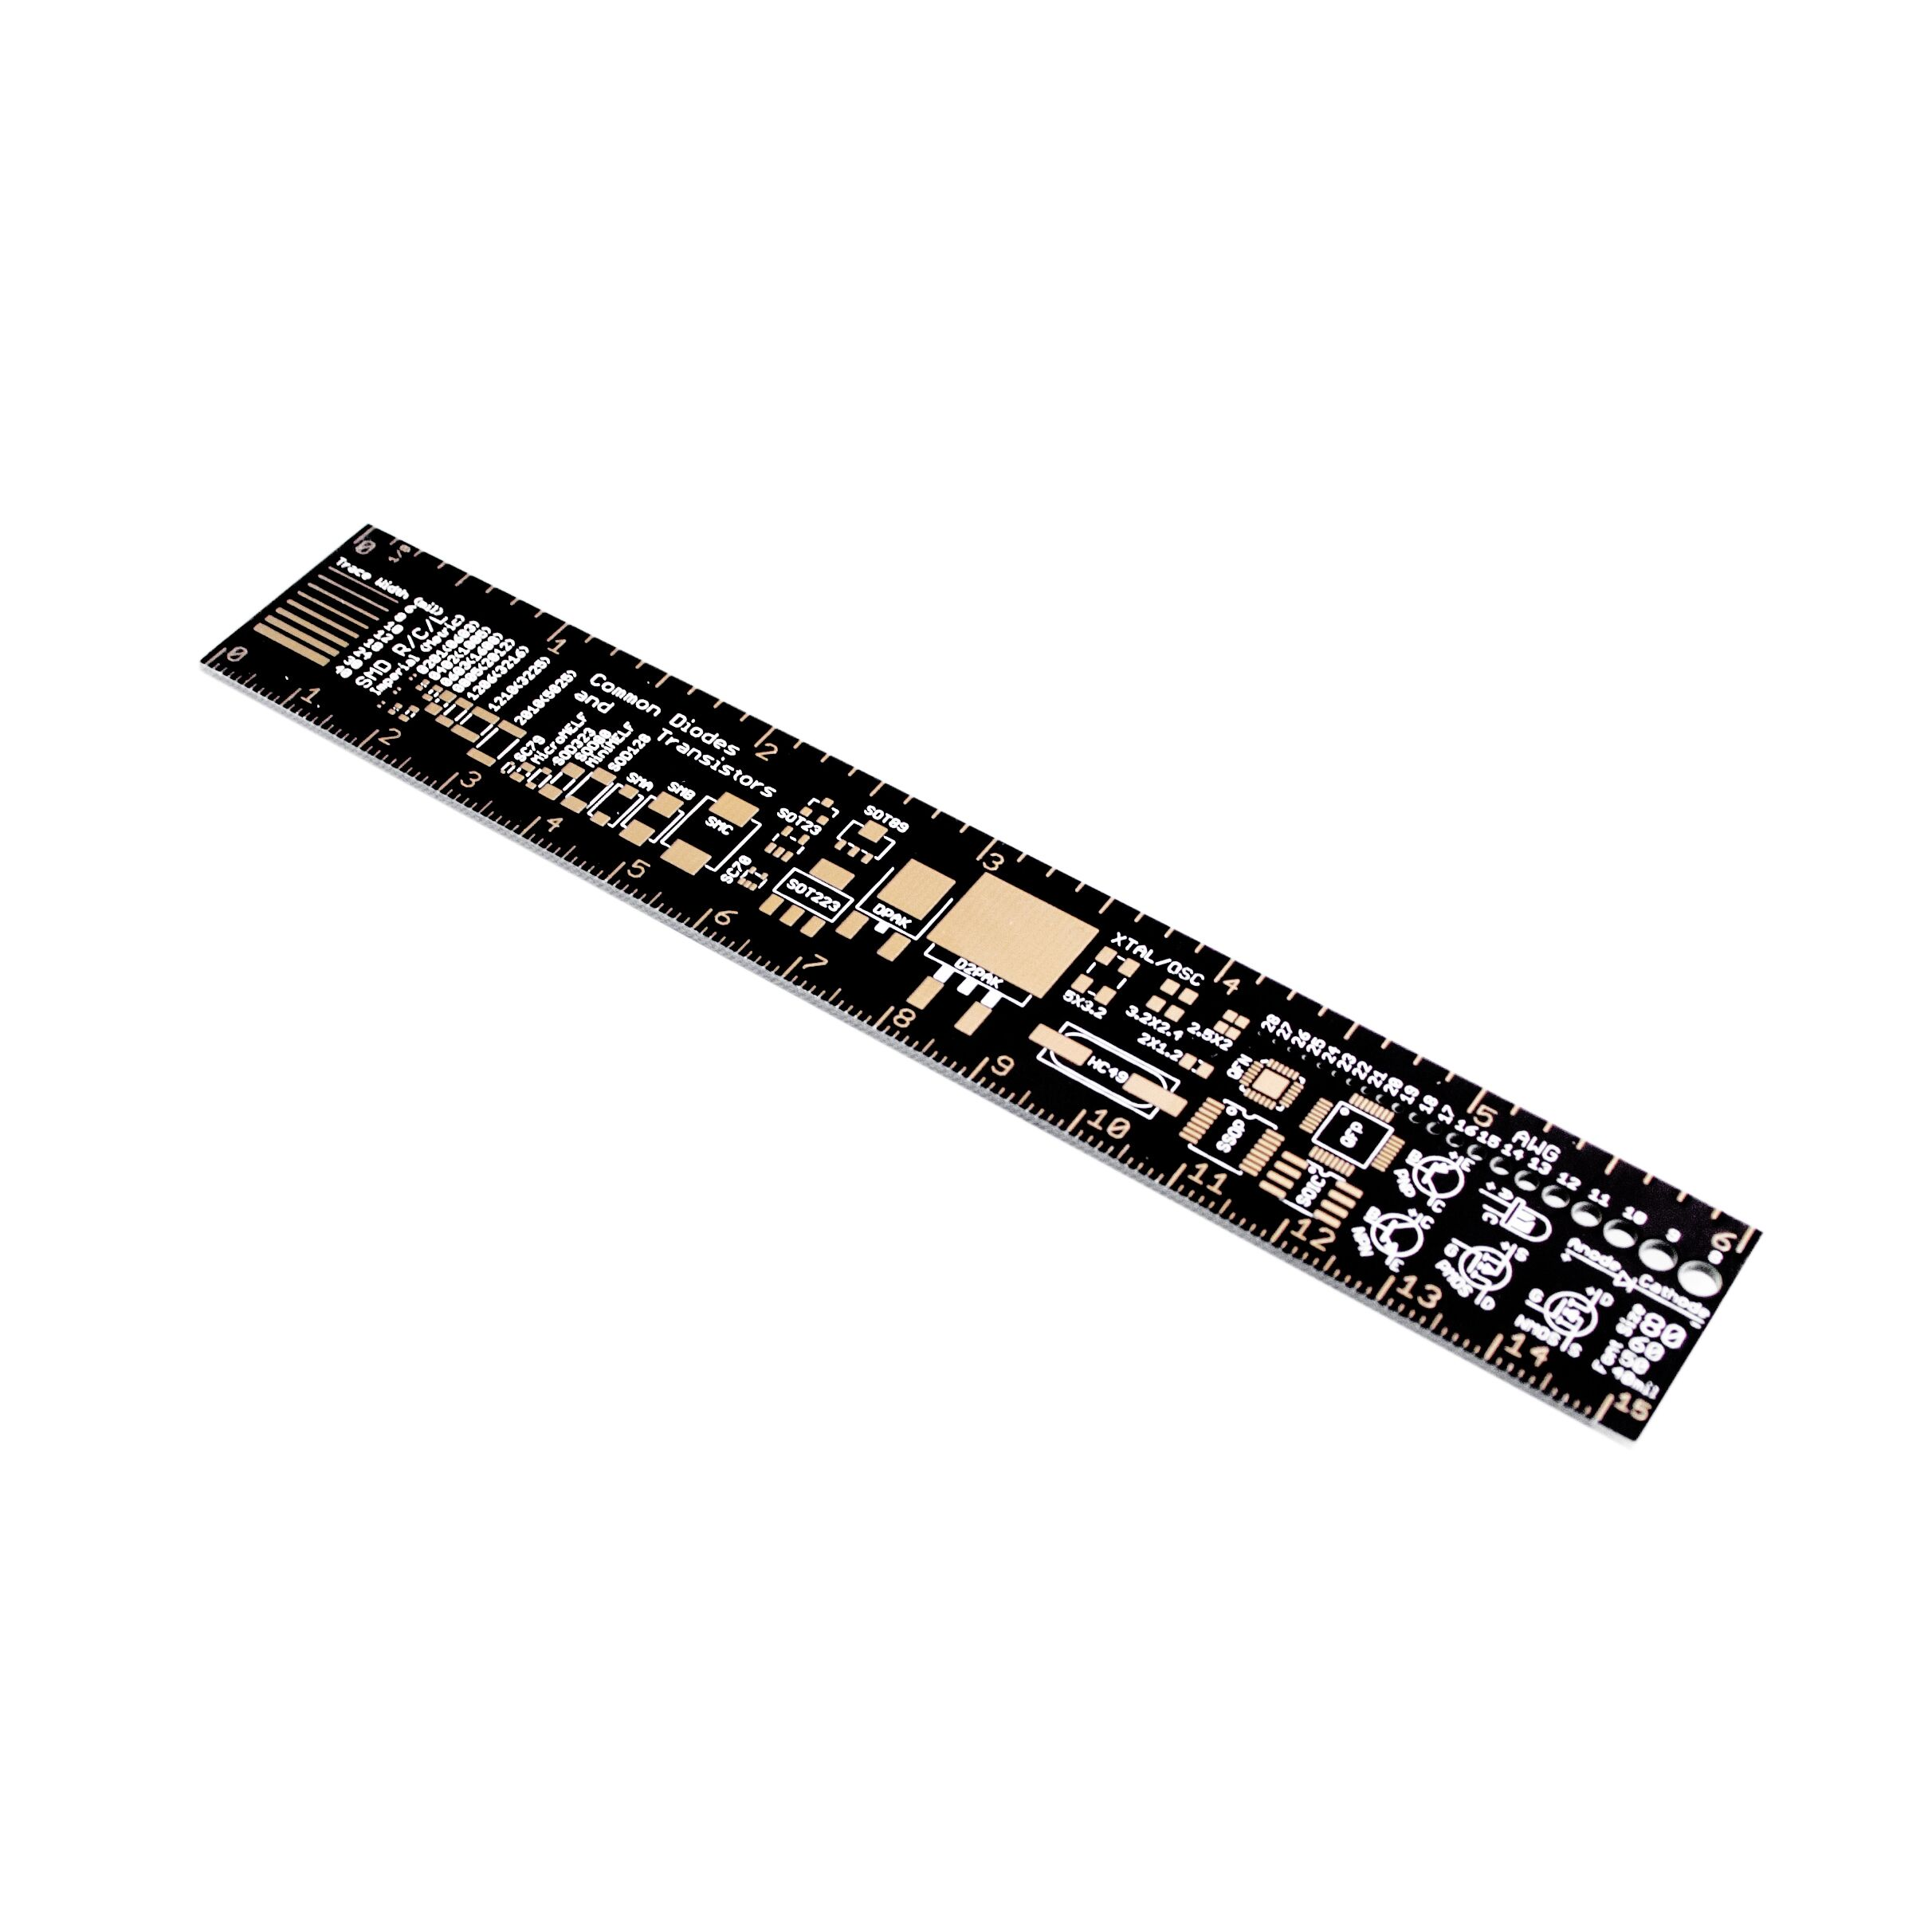 10PCS*/LOT PCB Reference Ruler v2 - 6 PCB Packaging Units for Arduino Electronic Engineers 15cm